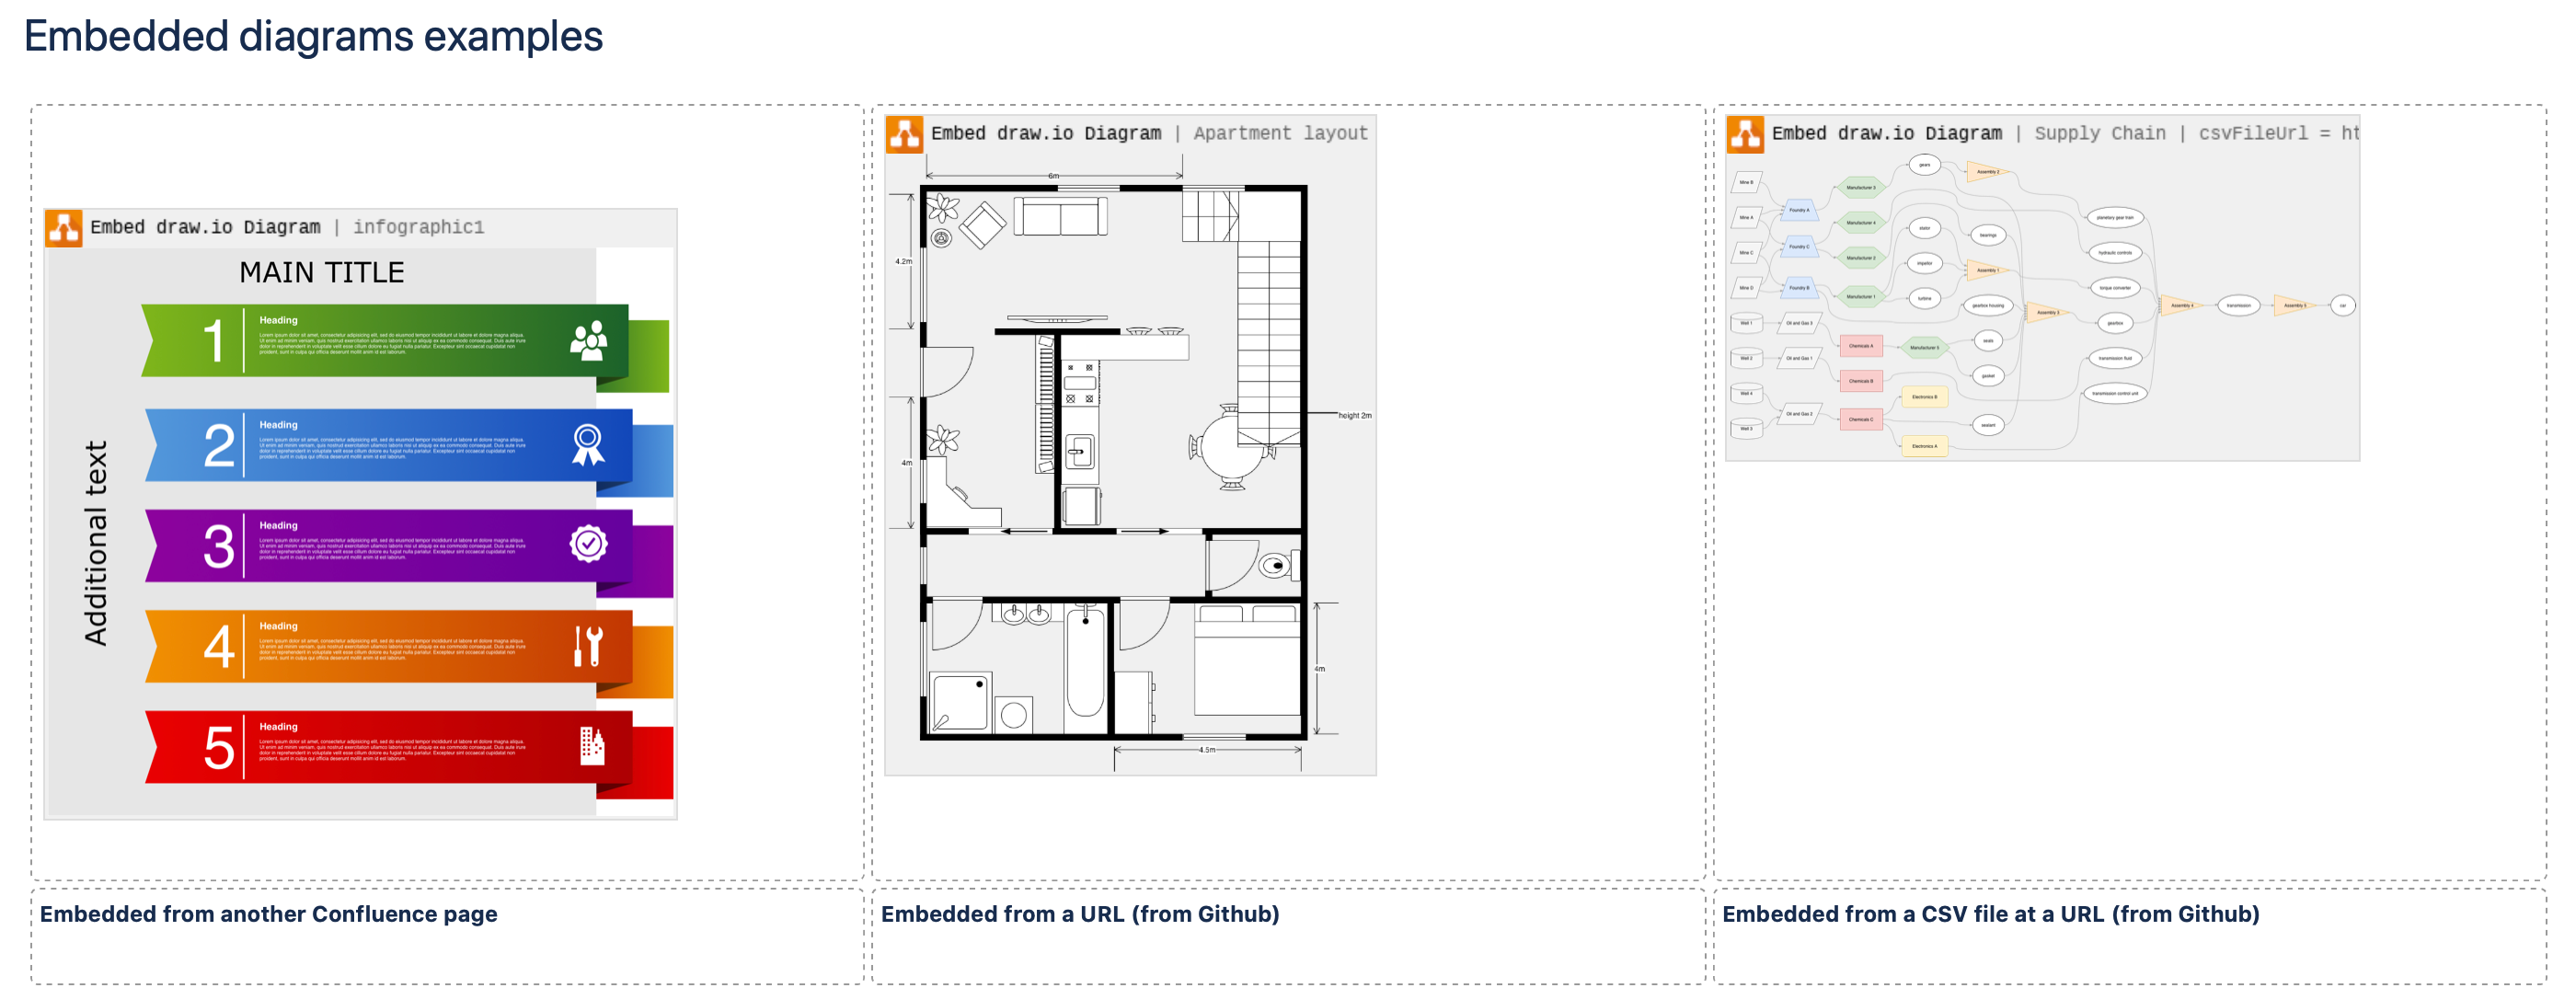 You'll see a preview of the diagrams embedded from another Confluence page or a URL while editing the page